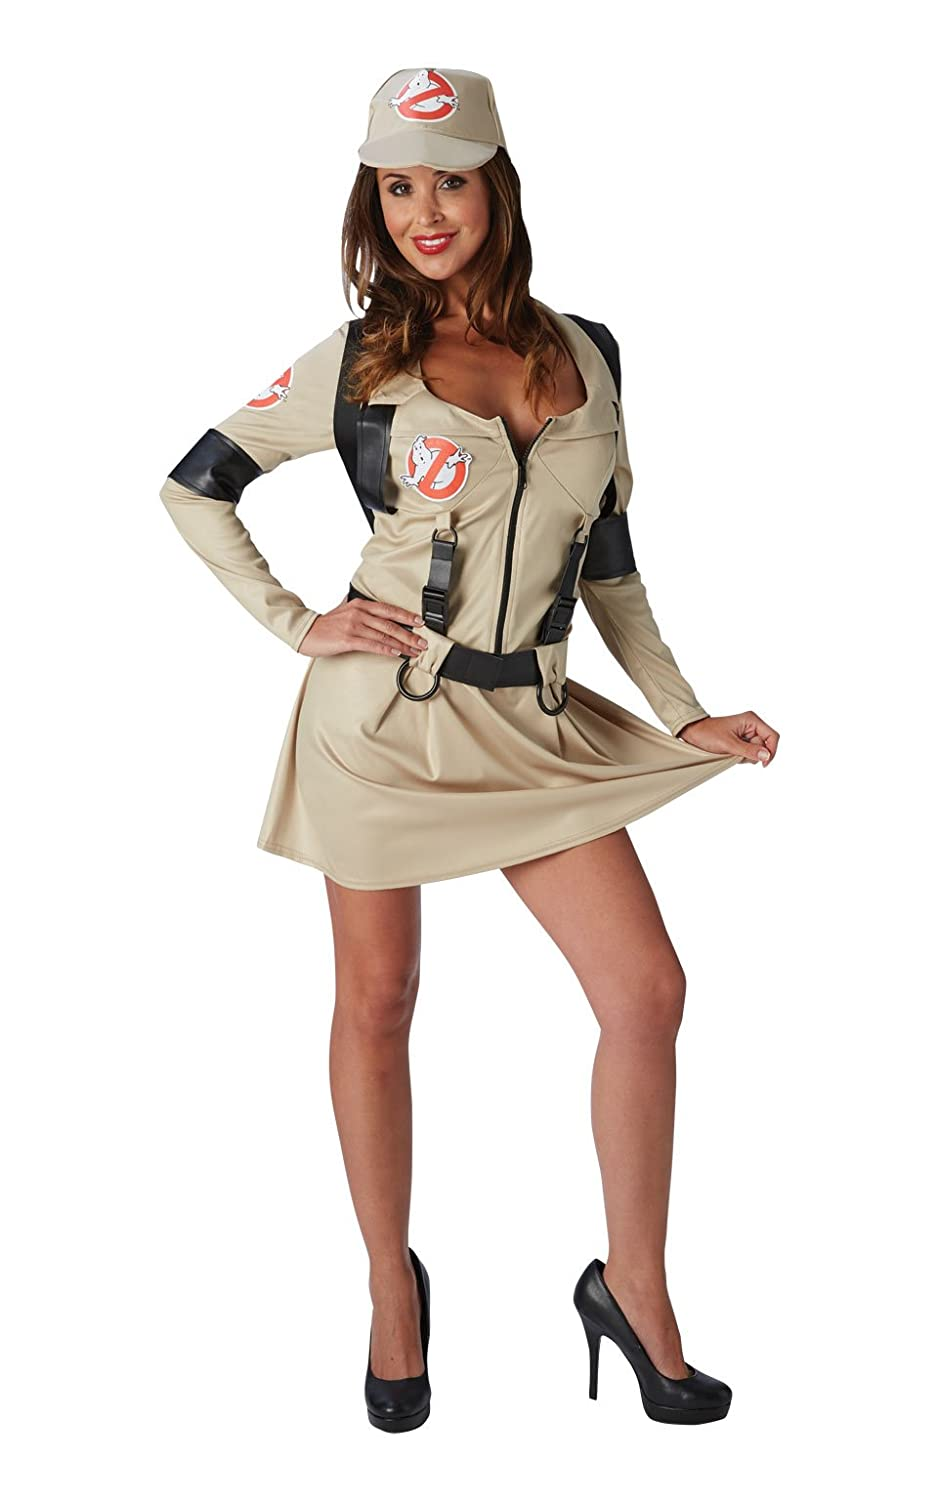 Rubie's Official Ghostbusters Ladies Fancy Dress Halloween 1980s Womens Adult 80s Costume Outfit UK 6-8 Rubies Rubie's Official Ghostbusters Ladies Fancy Dress Halloween 1980s Womens Adult 80s Costume Outfit UK 6-8 810954XS